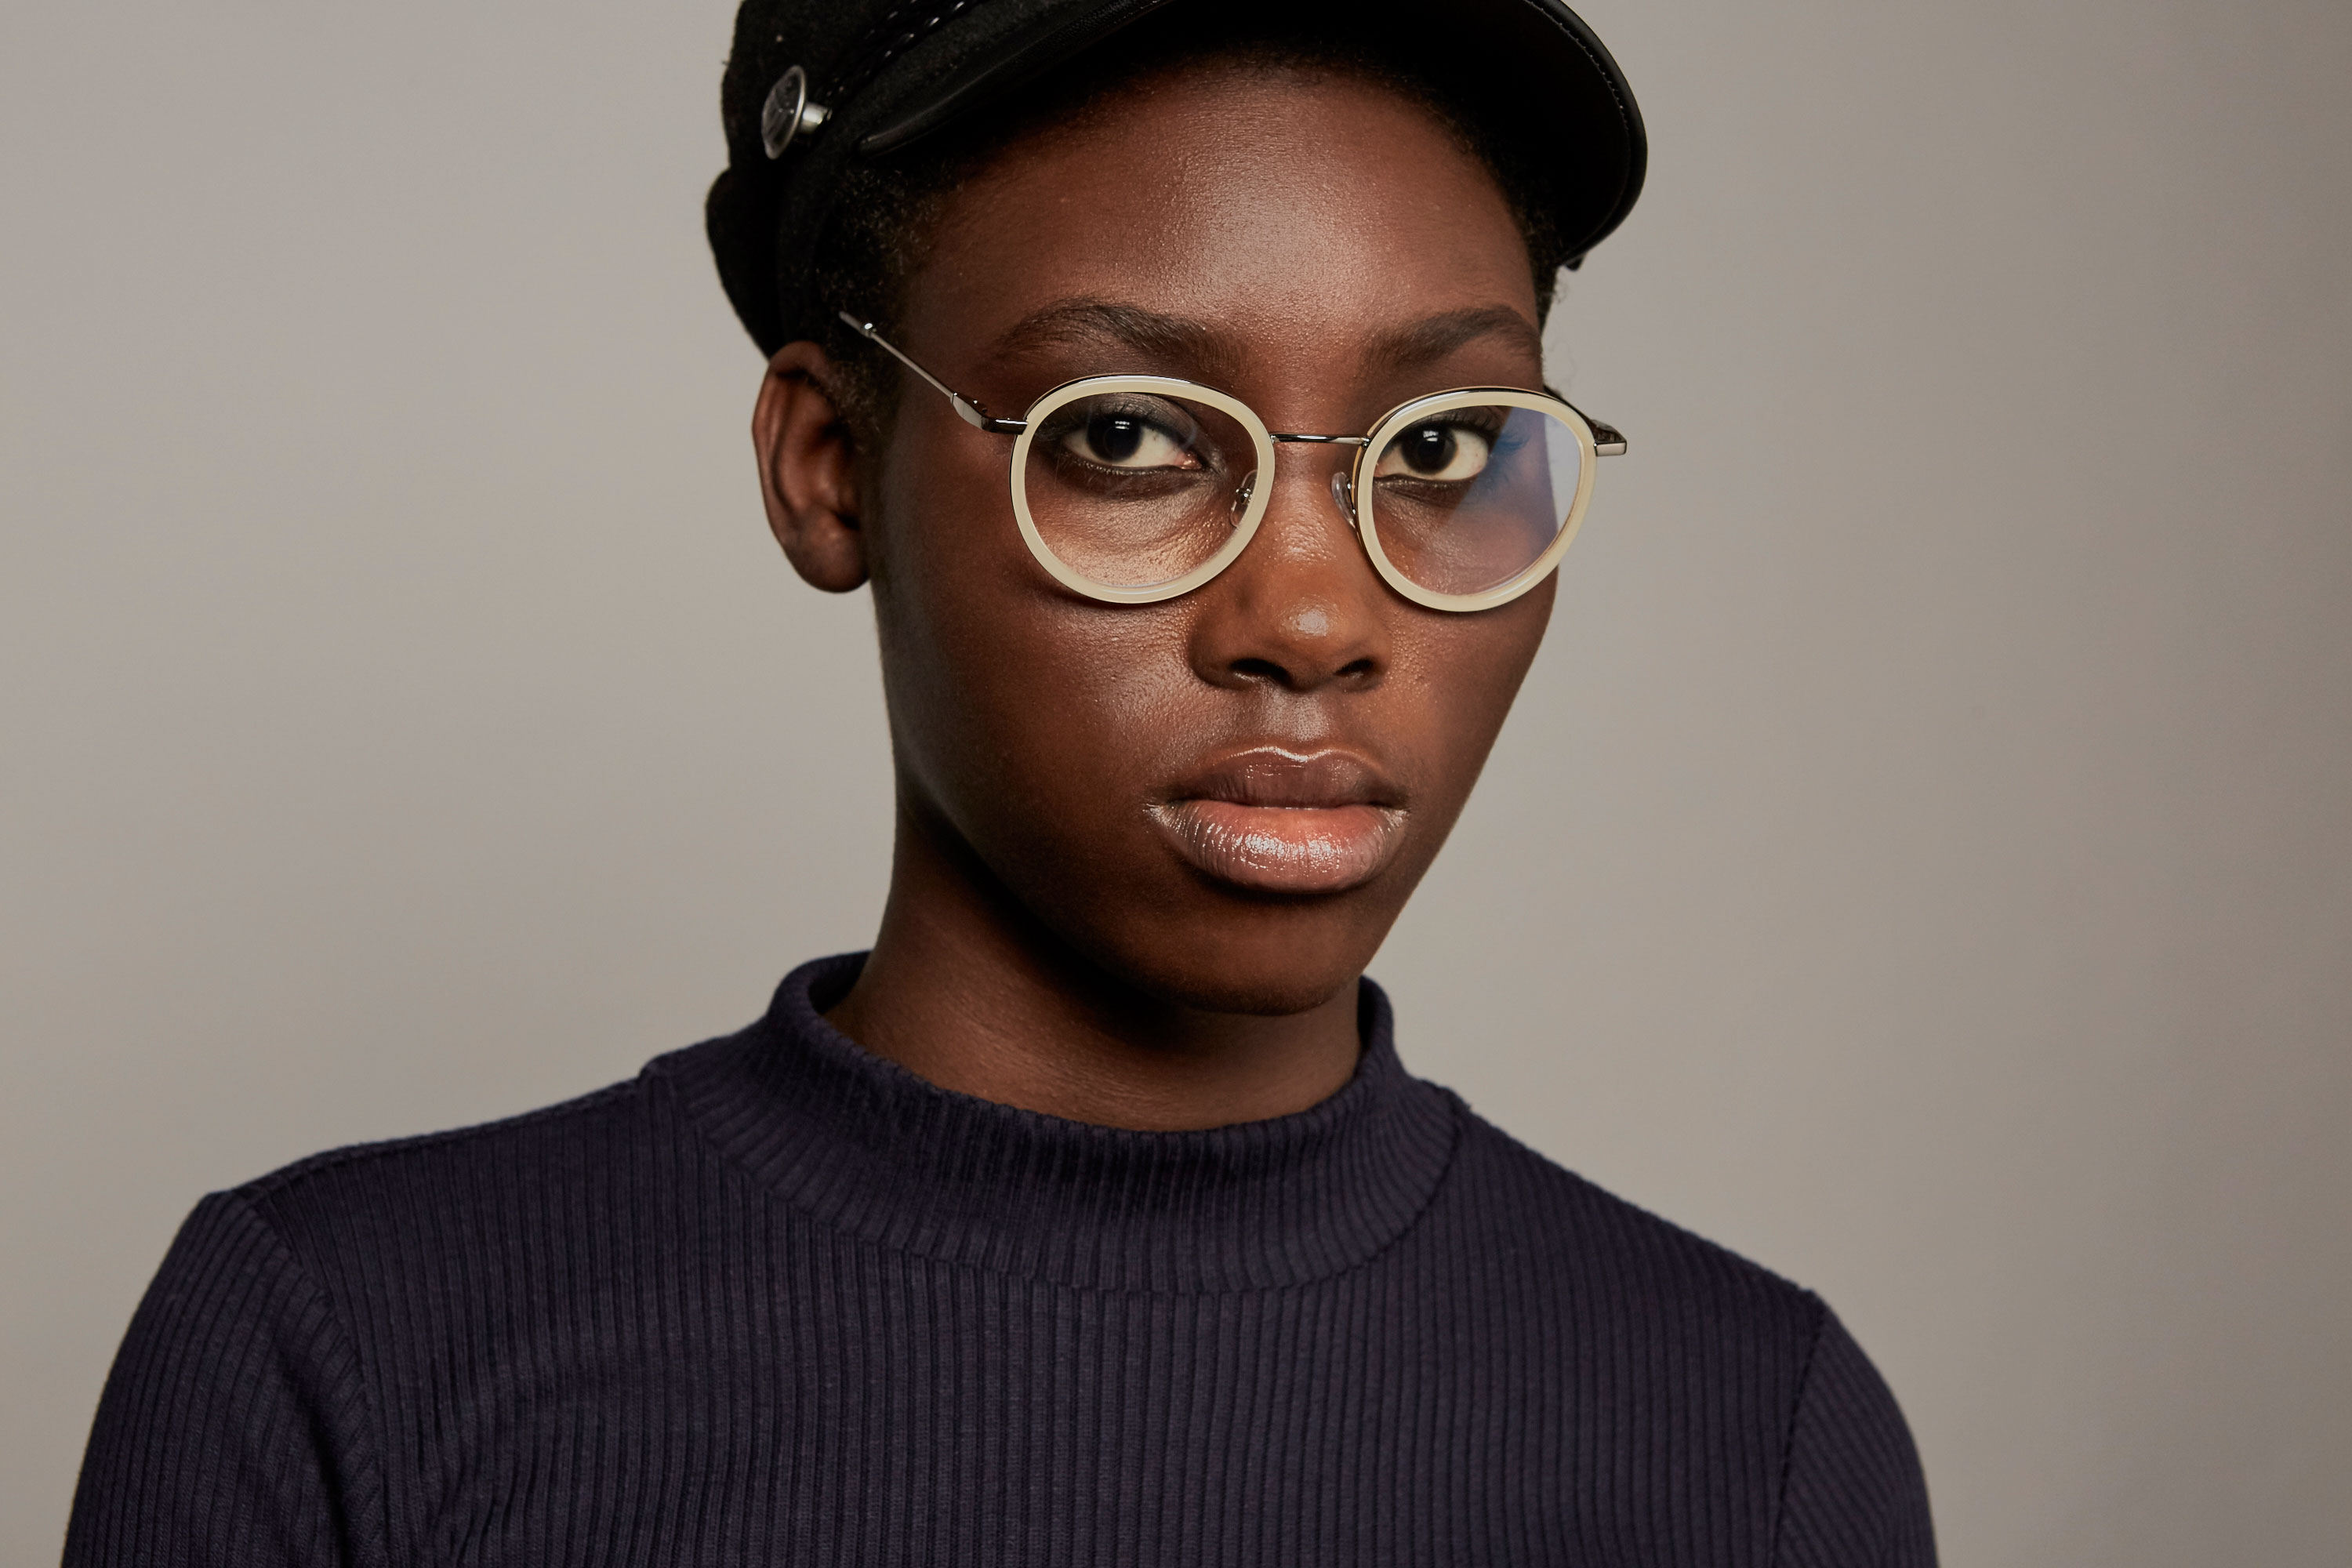 Stendhal acetate/metal rounded white sunglasses by GIGI Studios